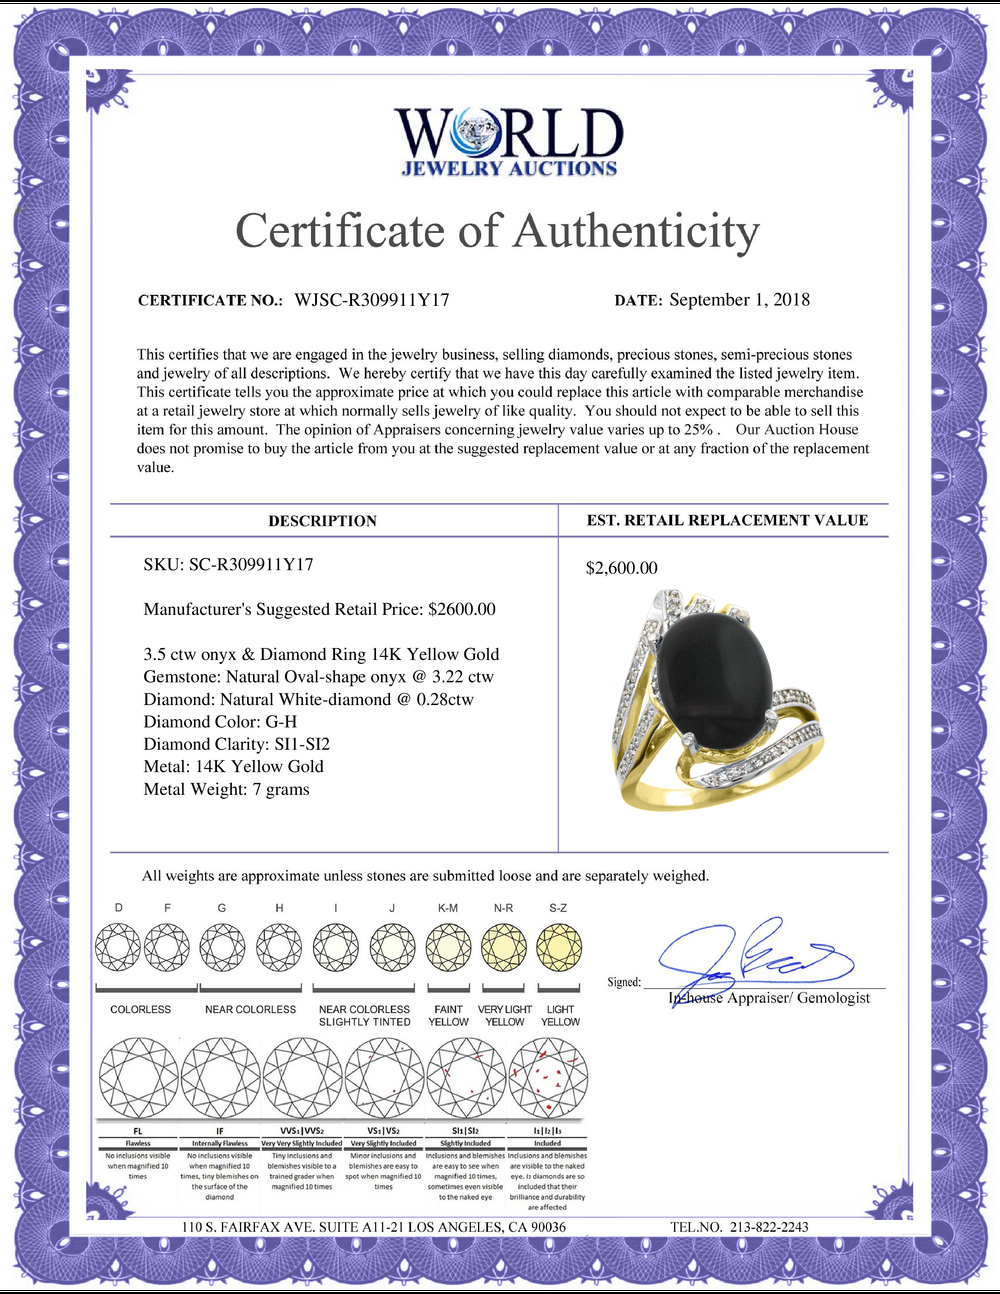 Lot 4087: Natural 3.5 ctw onyx & Diamond Engagement Ring 14K Yellow Gold - REF-86F5N